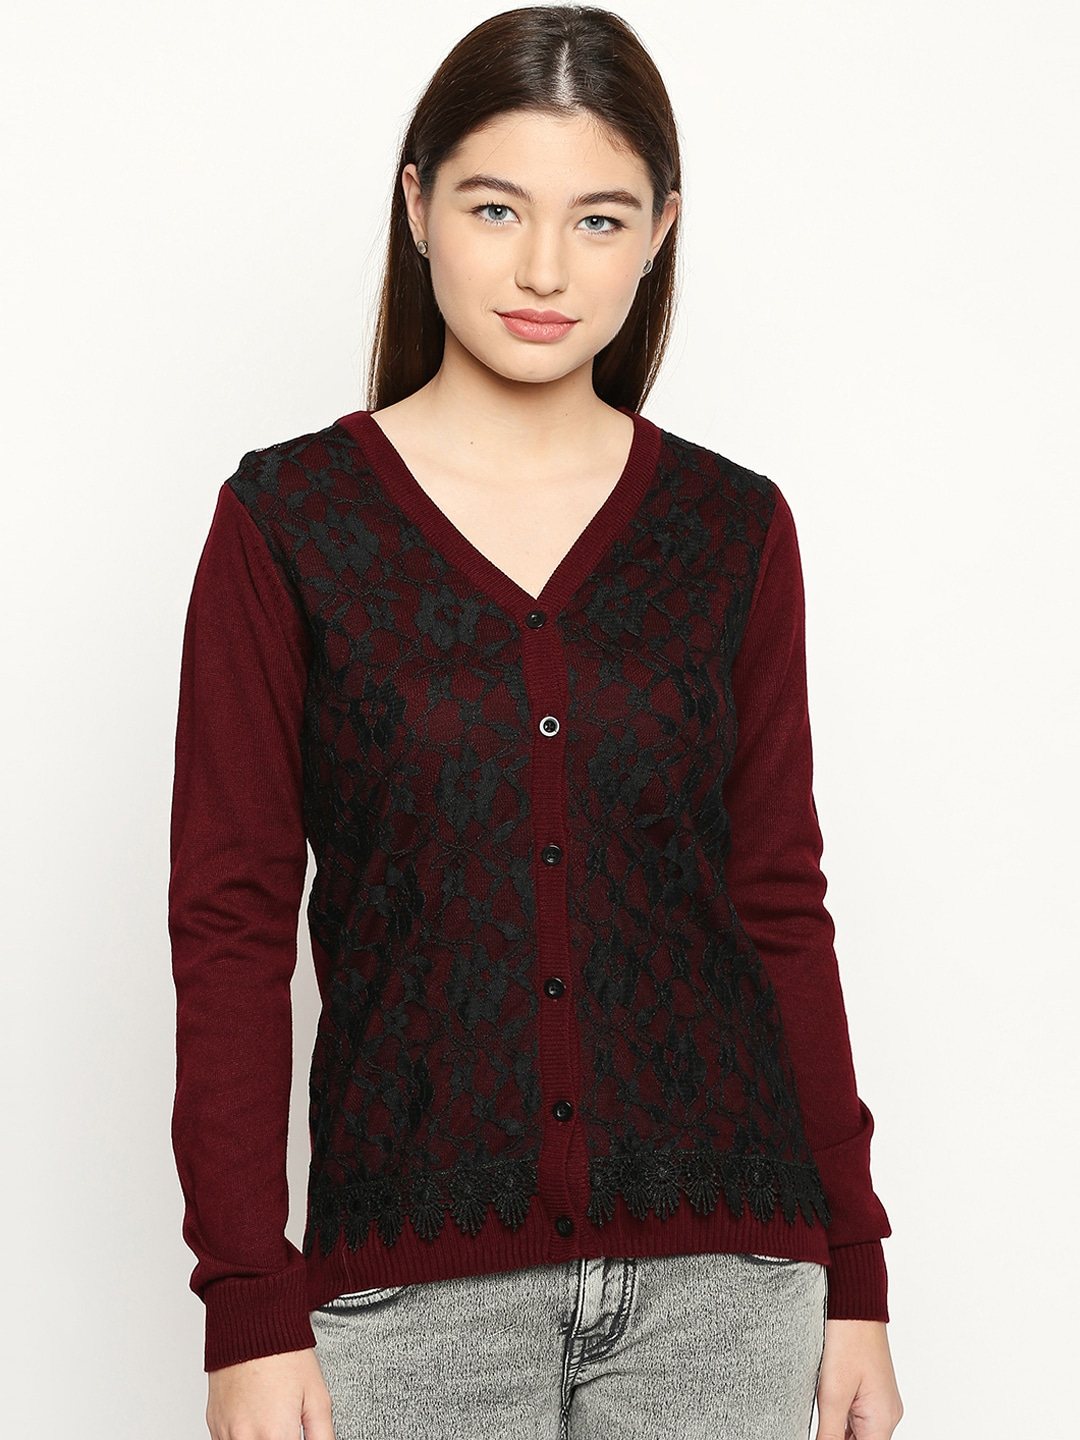 Buy American Eagle Outfitters Women Burgundy Solid Pullover Sweater